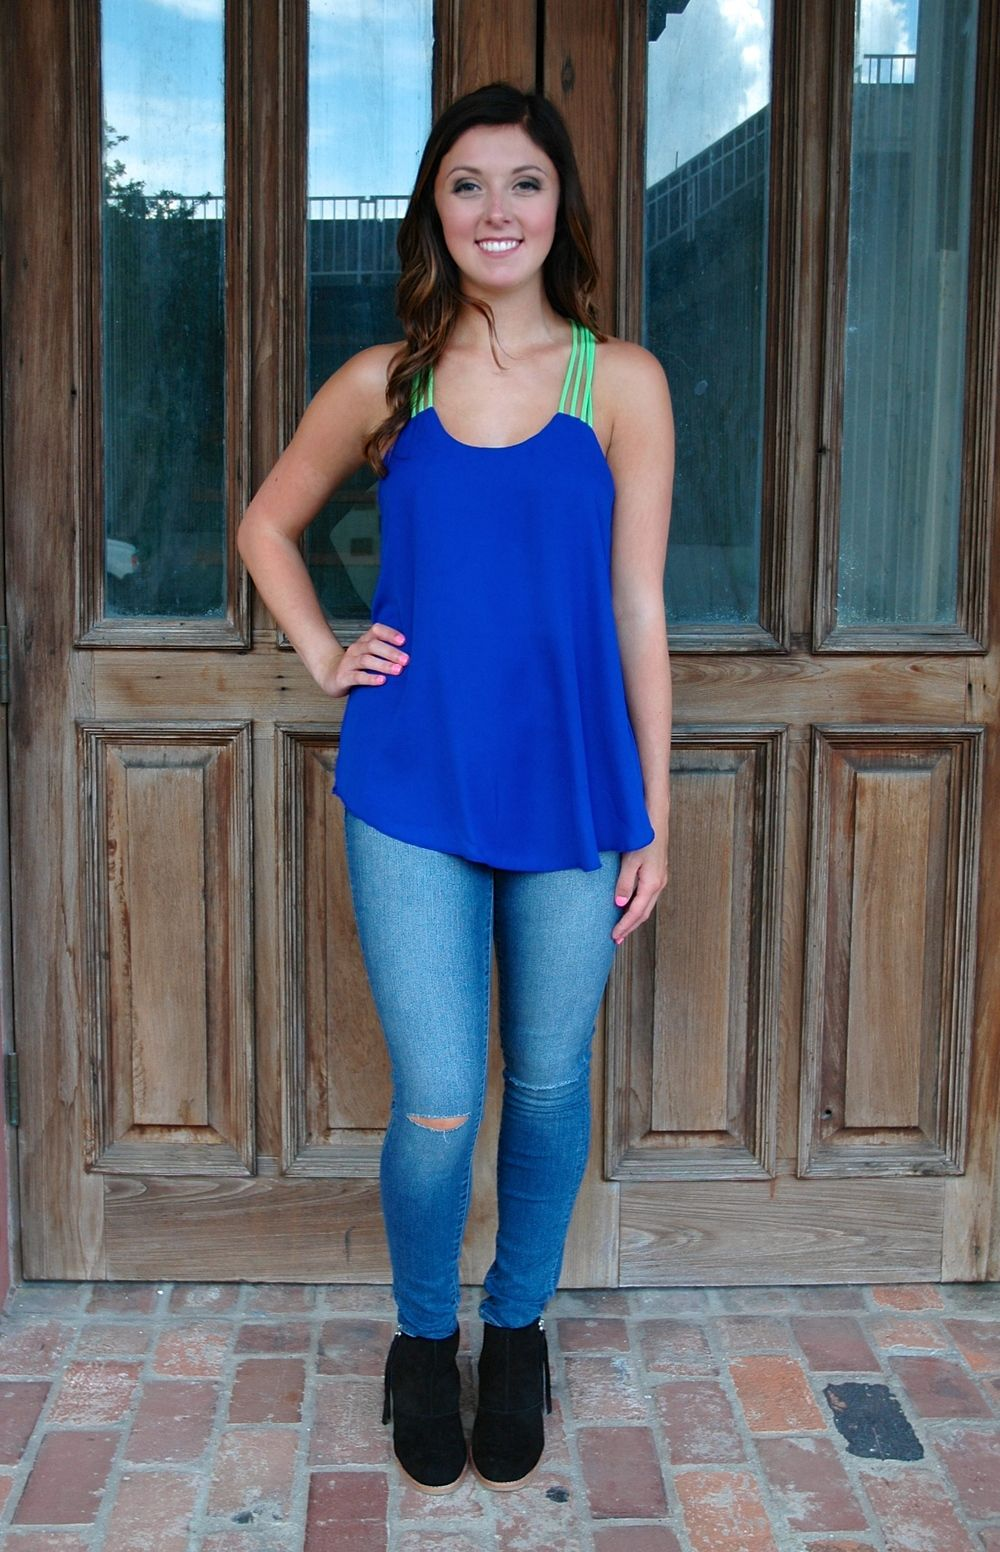 Cobalt & Lime Strappy Back Top http://www.shopwildflowerboutique.com/new-products/cobalt-lime-strappy-back-top